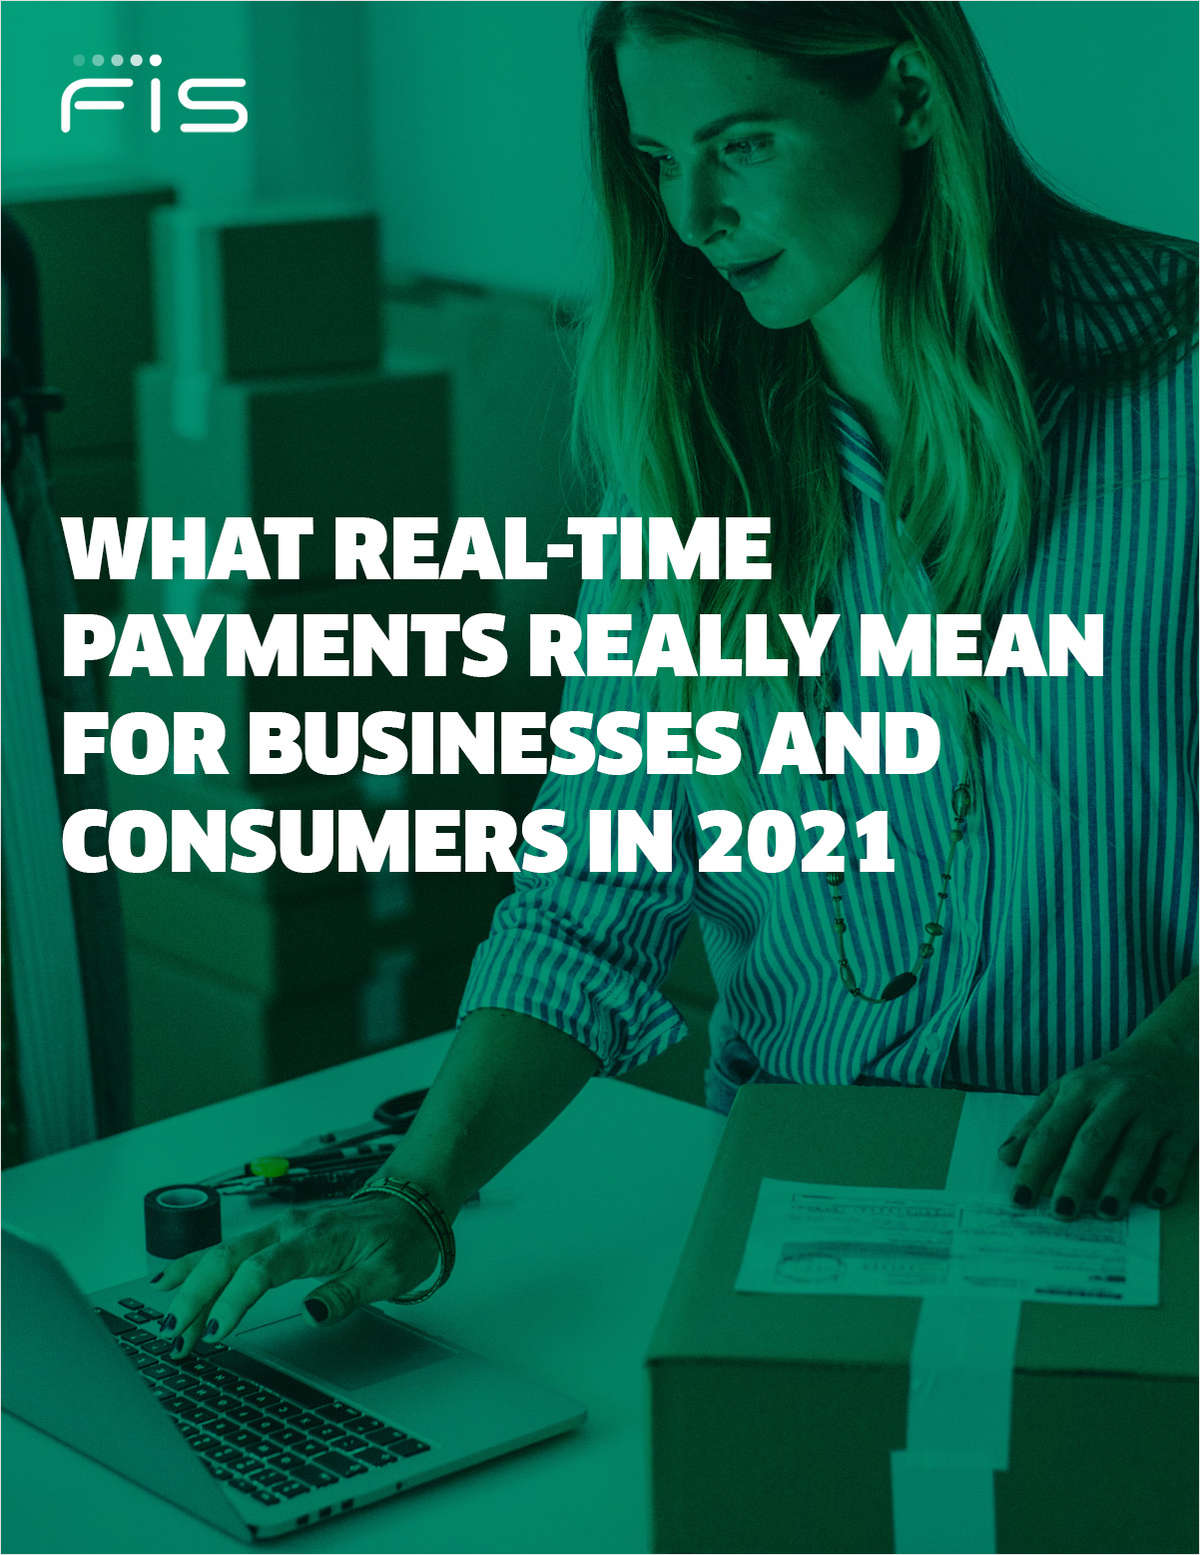 What Real-time Payments Really Mean for Businesses and Consumers in 2021.